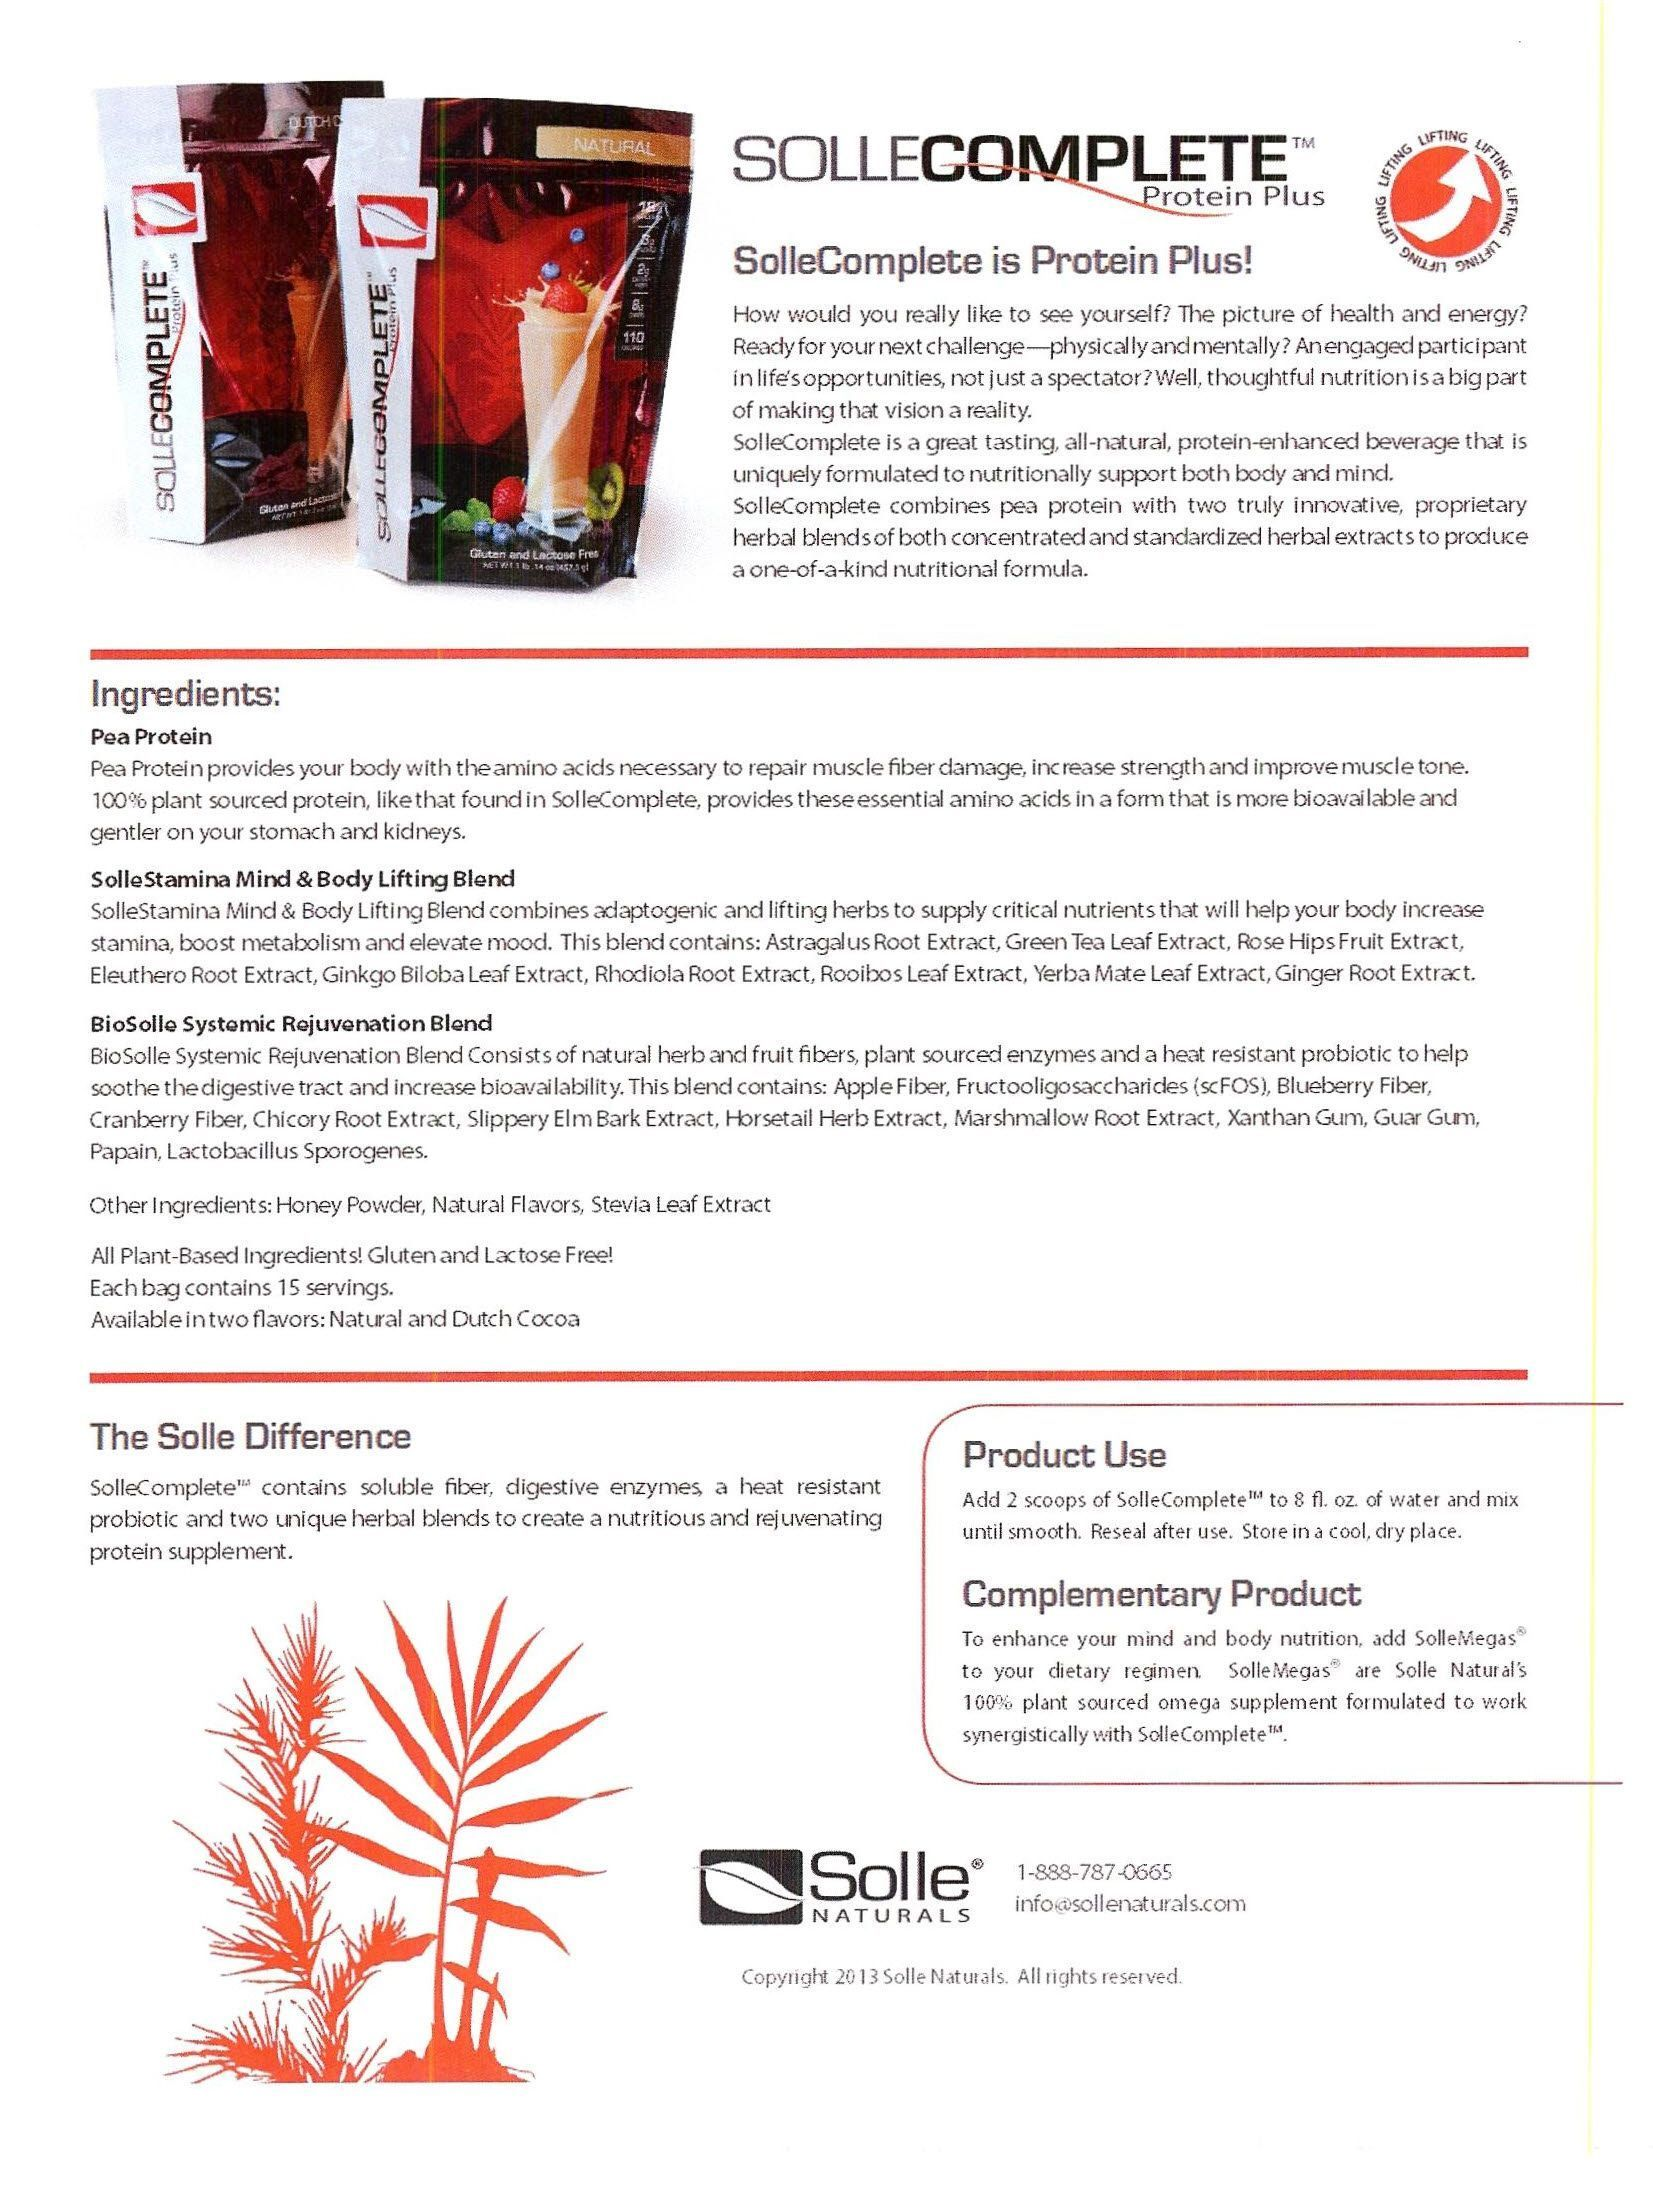 Sollecomplete Is A Special Protein Plus Meal Replacement That Works